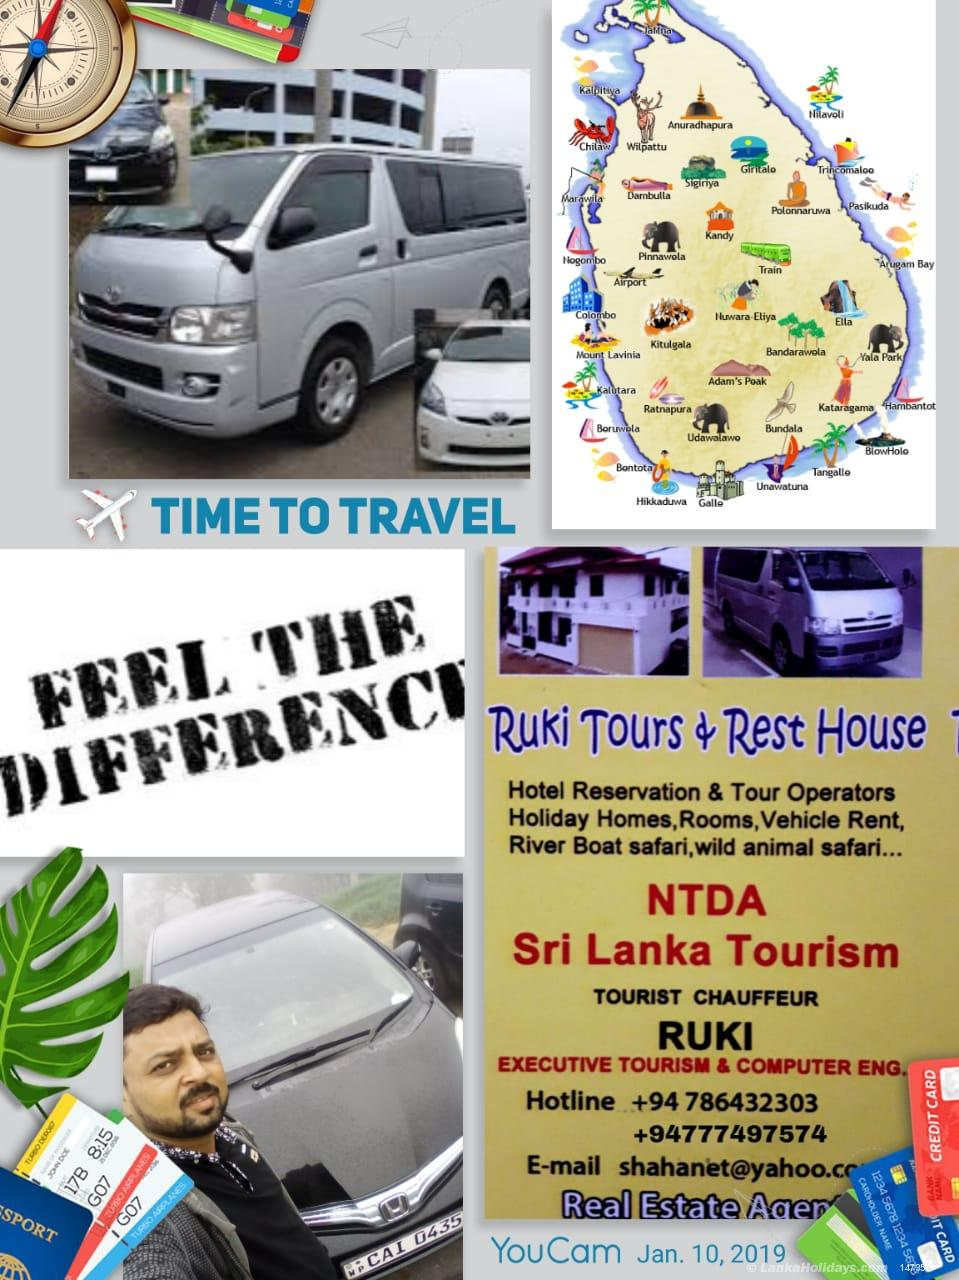 Sri Lanka Van Rentals/Hire - VAN AND CARS A/C SHORT / LONG TERM WITH